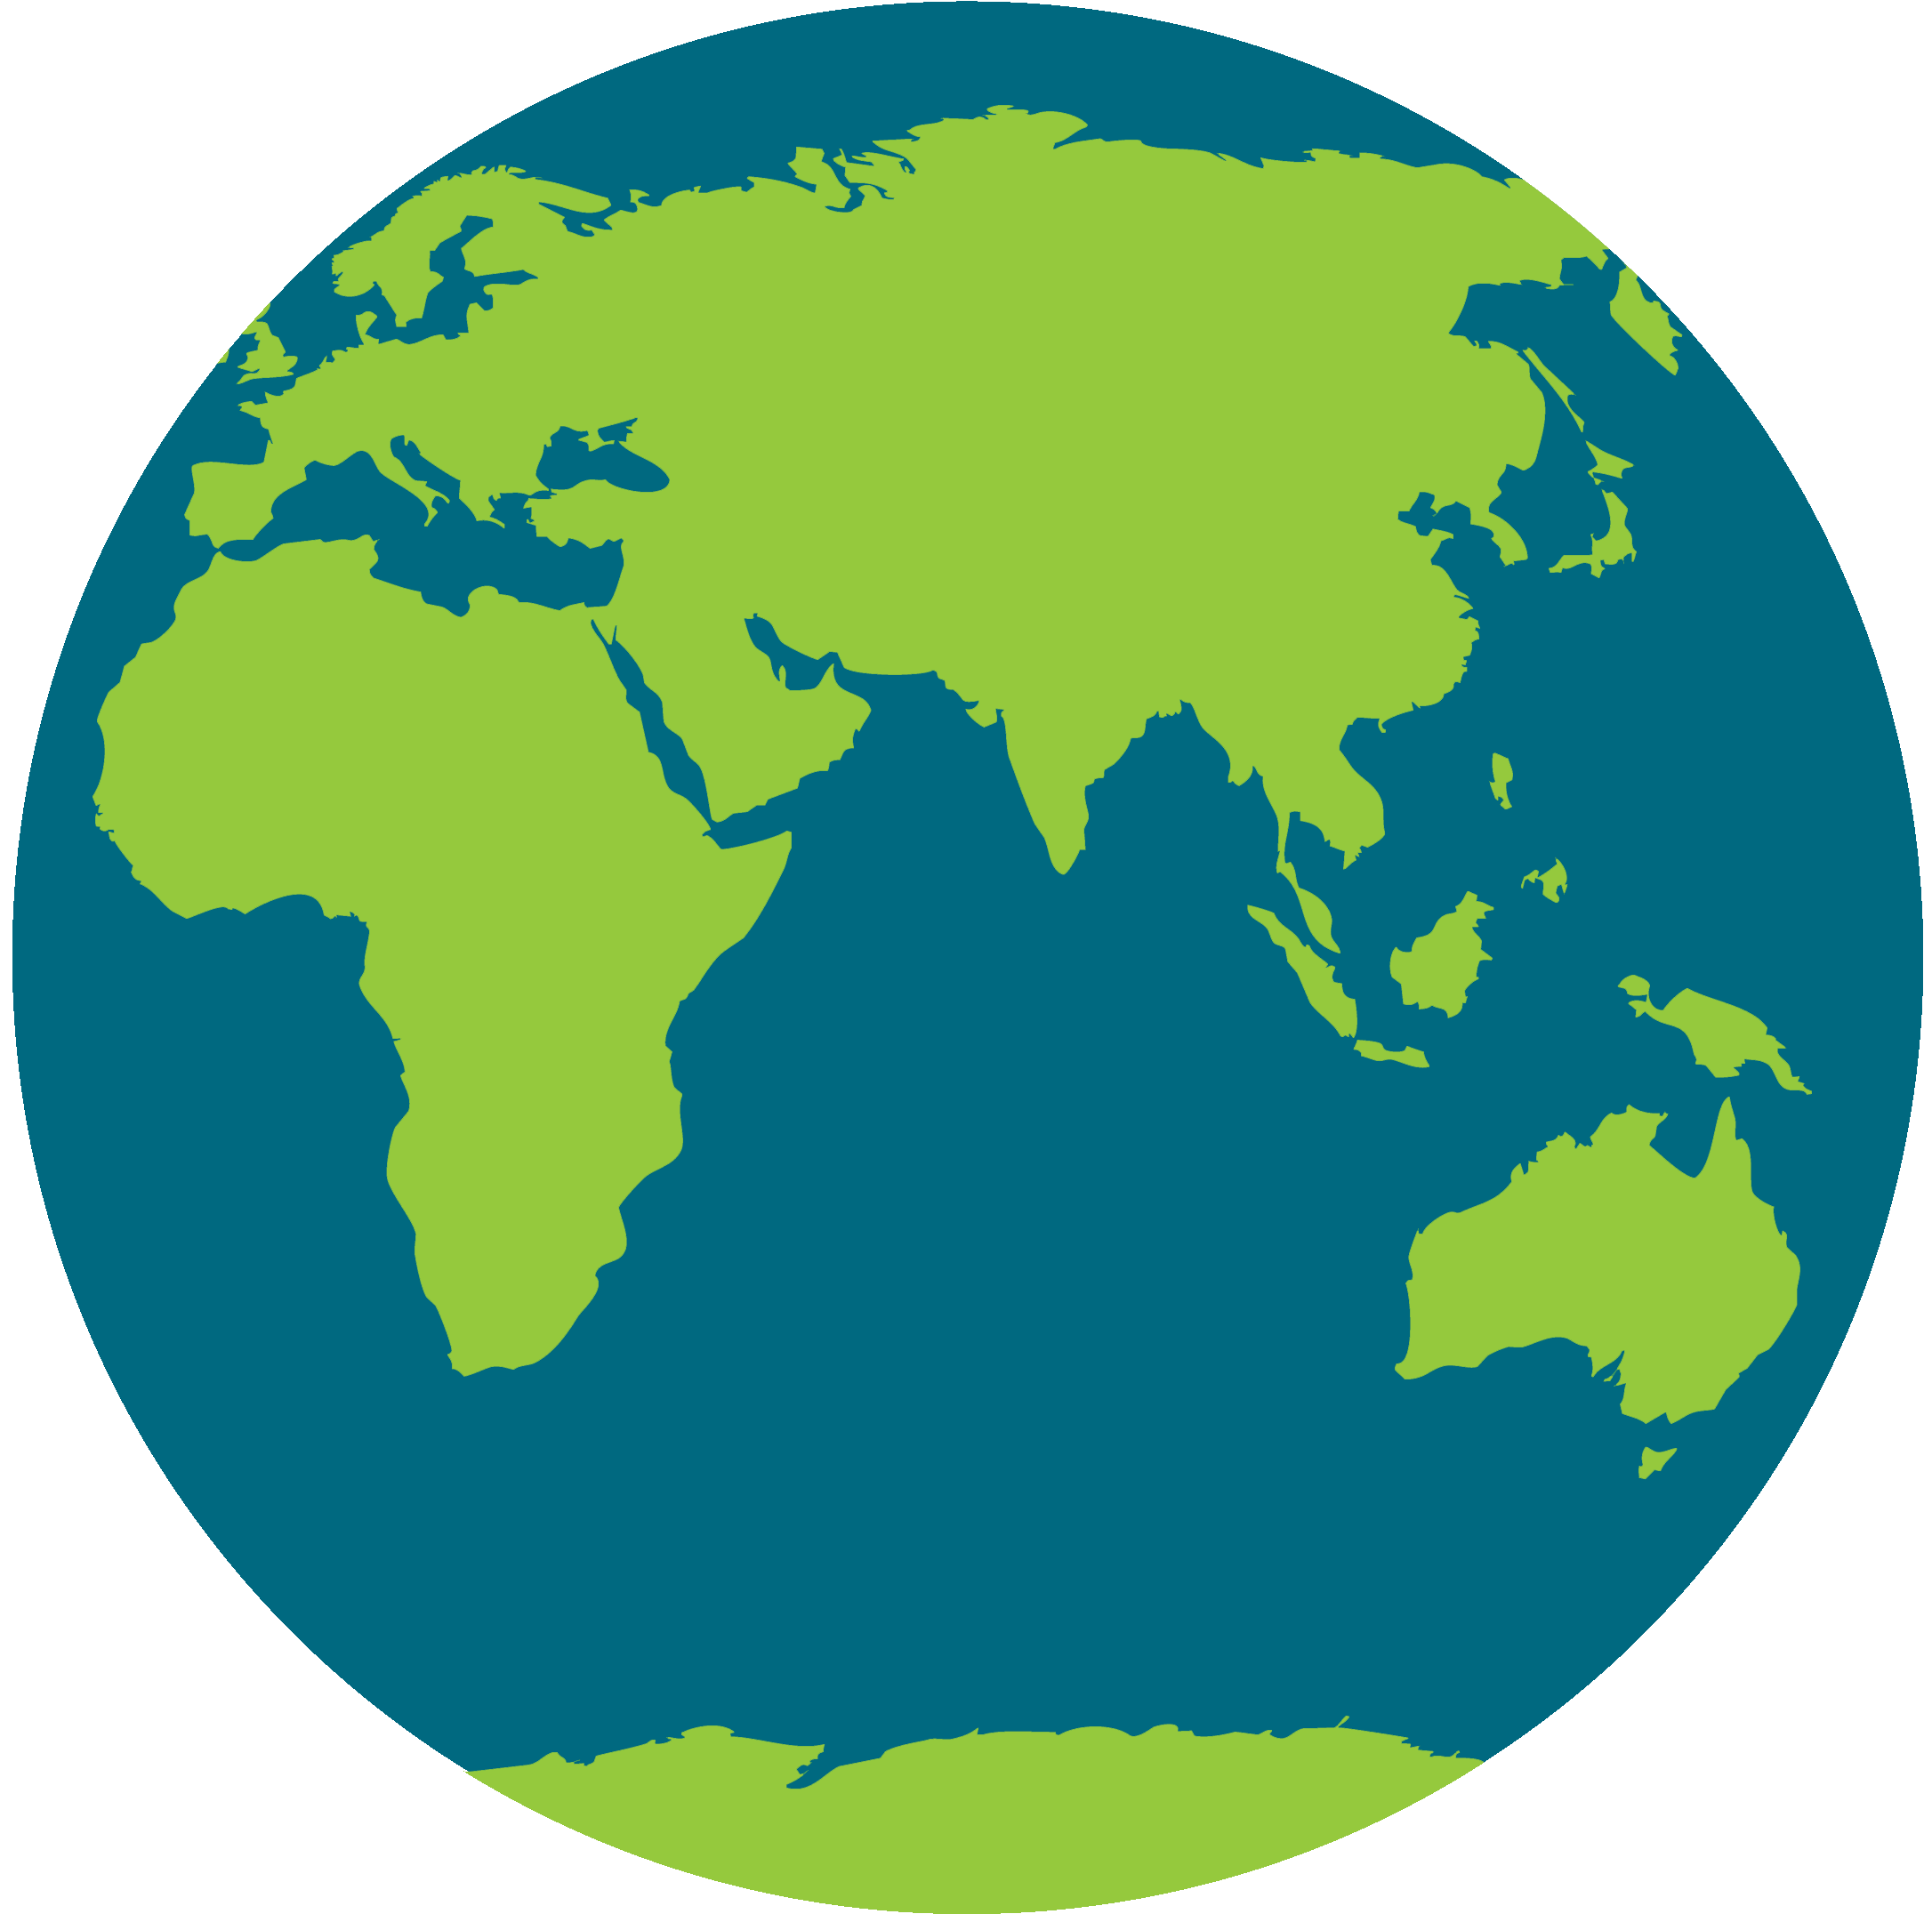 World Maps In InterVarsity Colors